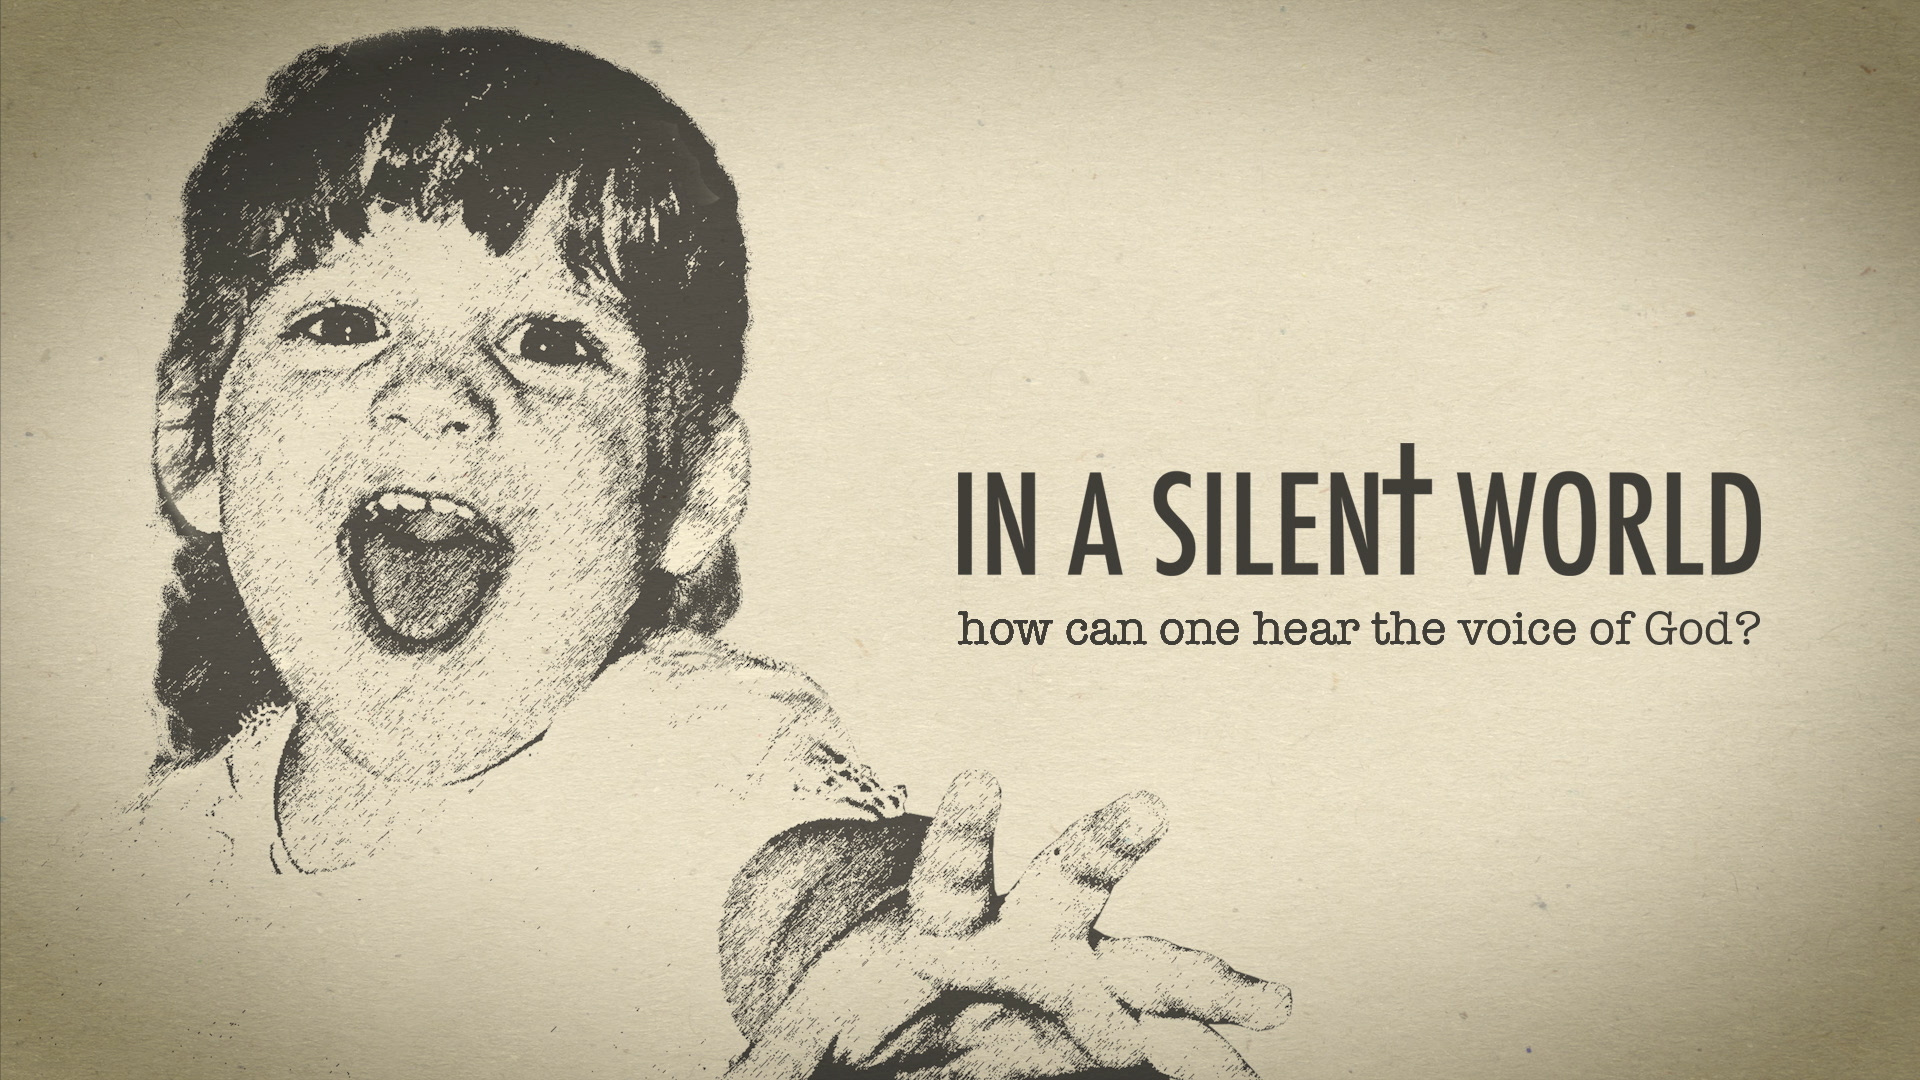 In a Silent World